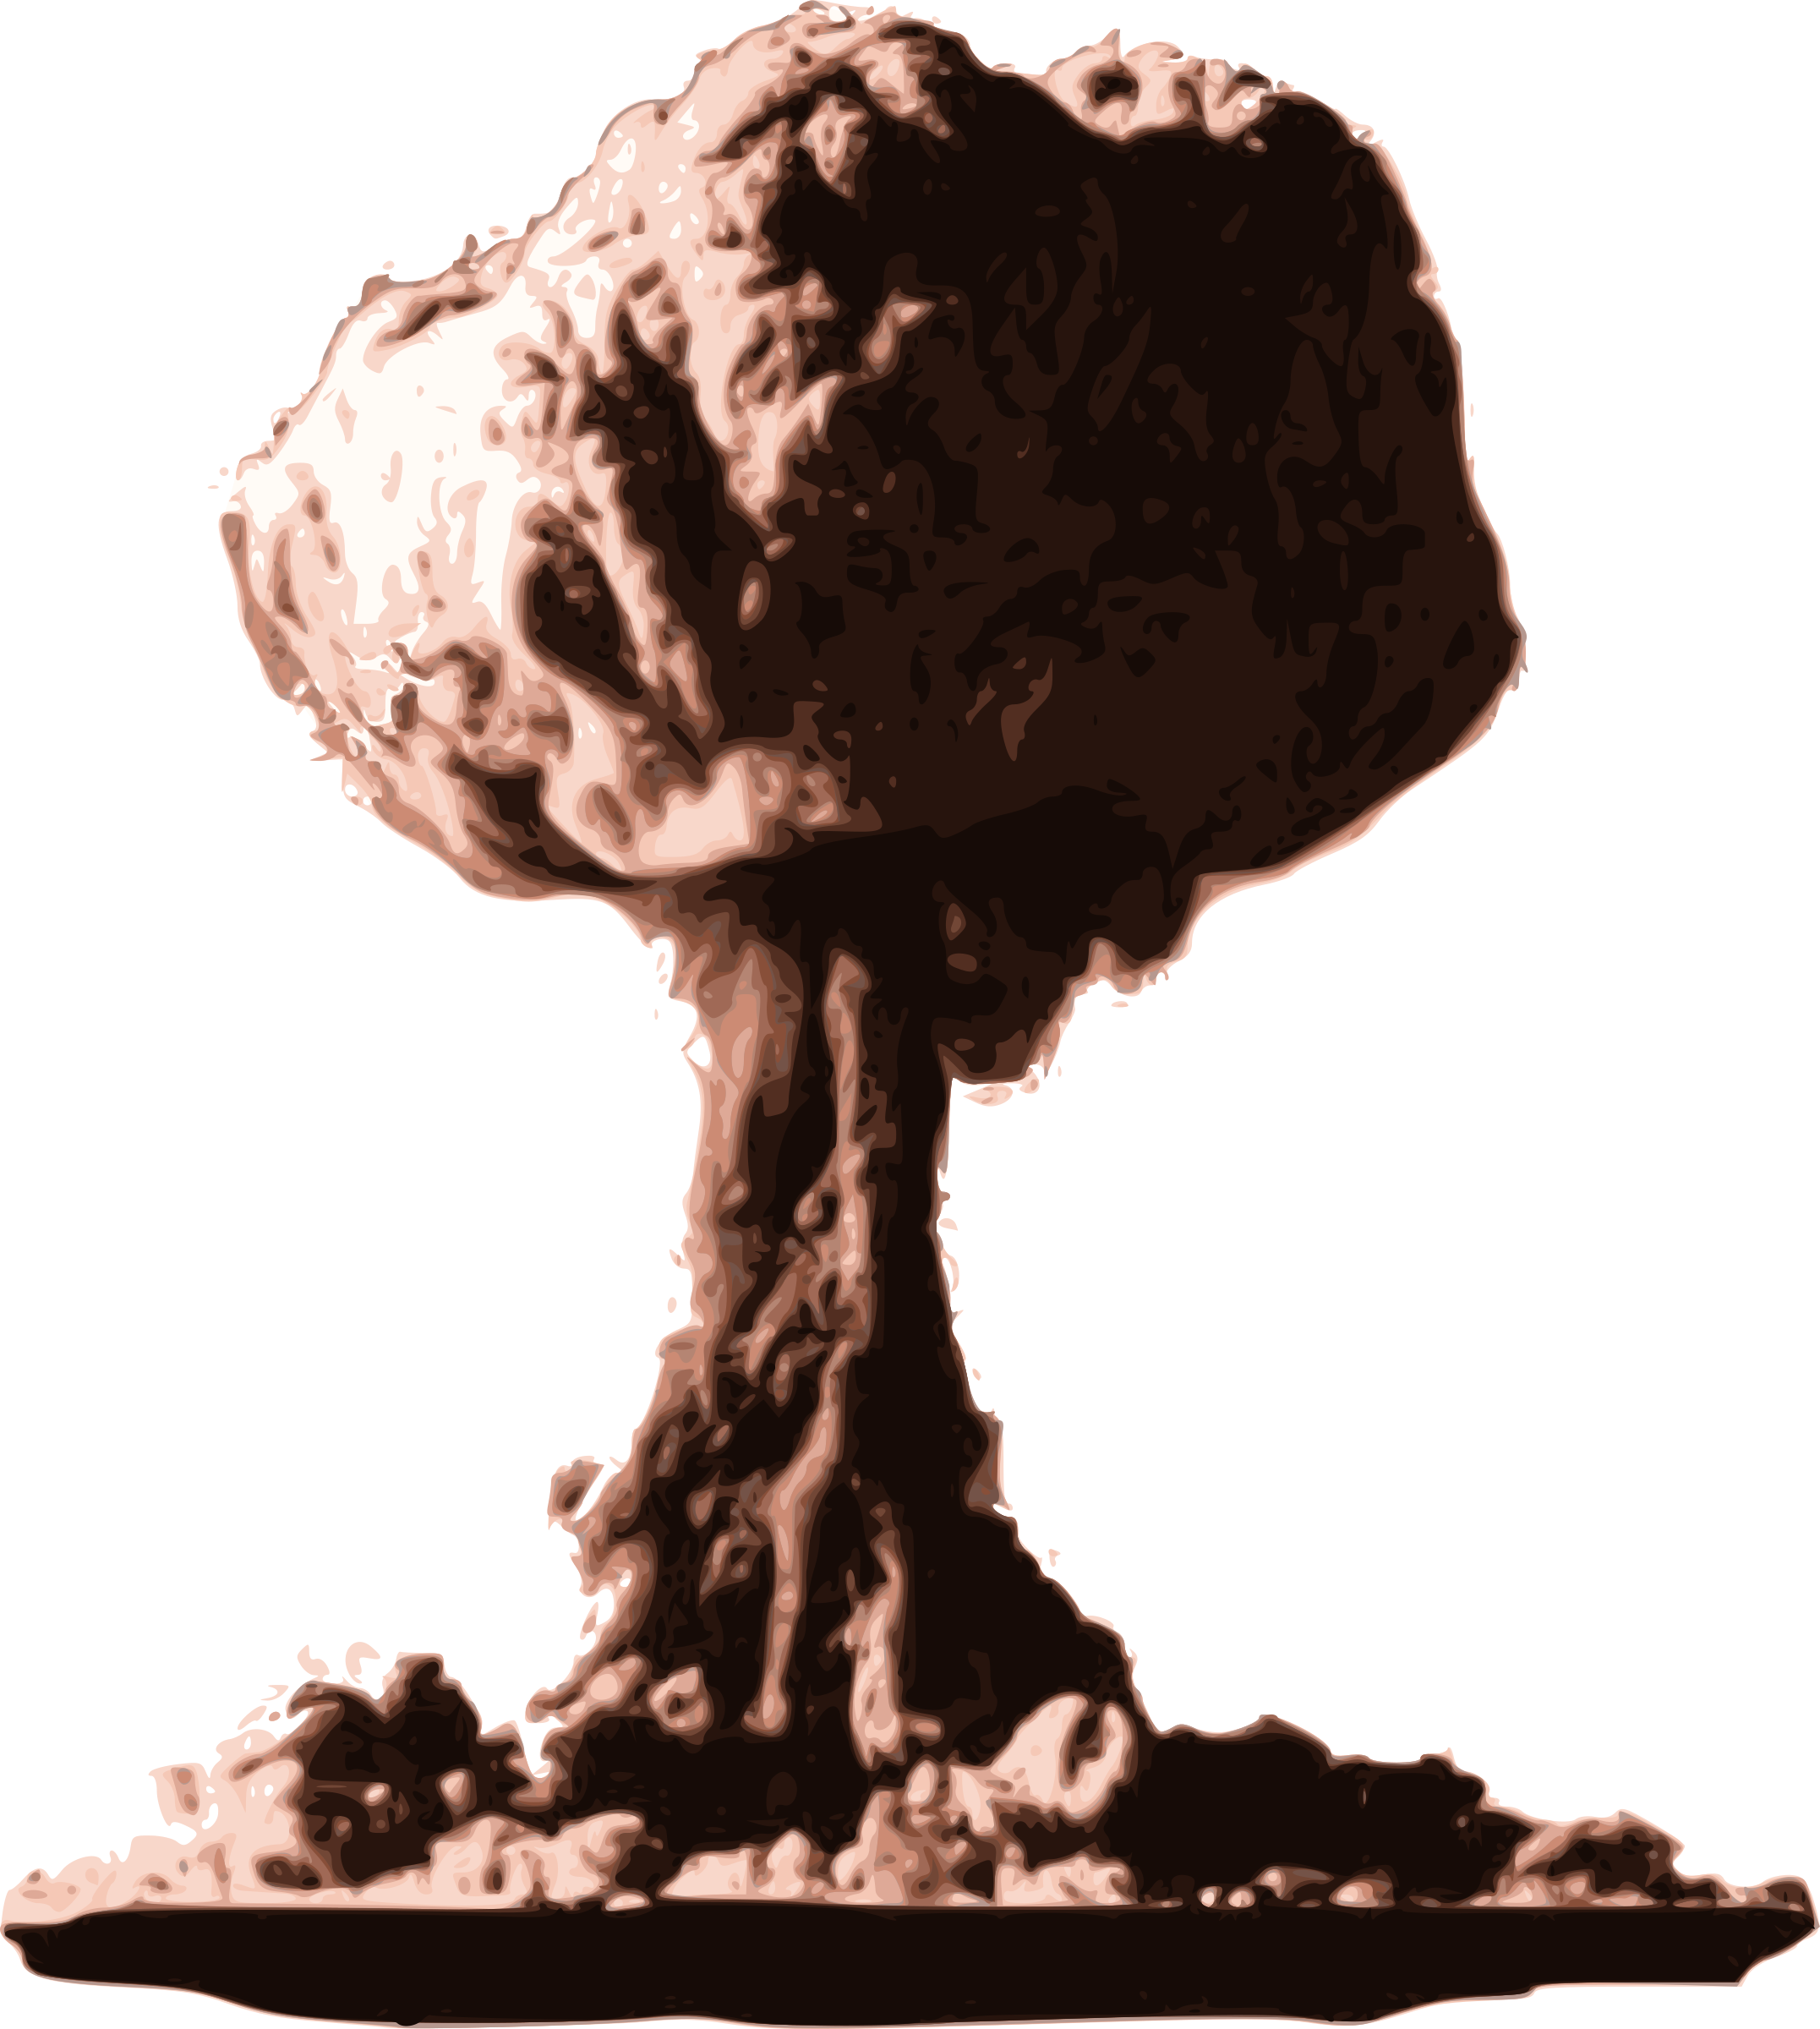 Download Clipart Png download nuclear explosion PNG images